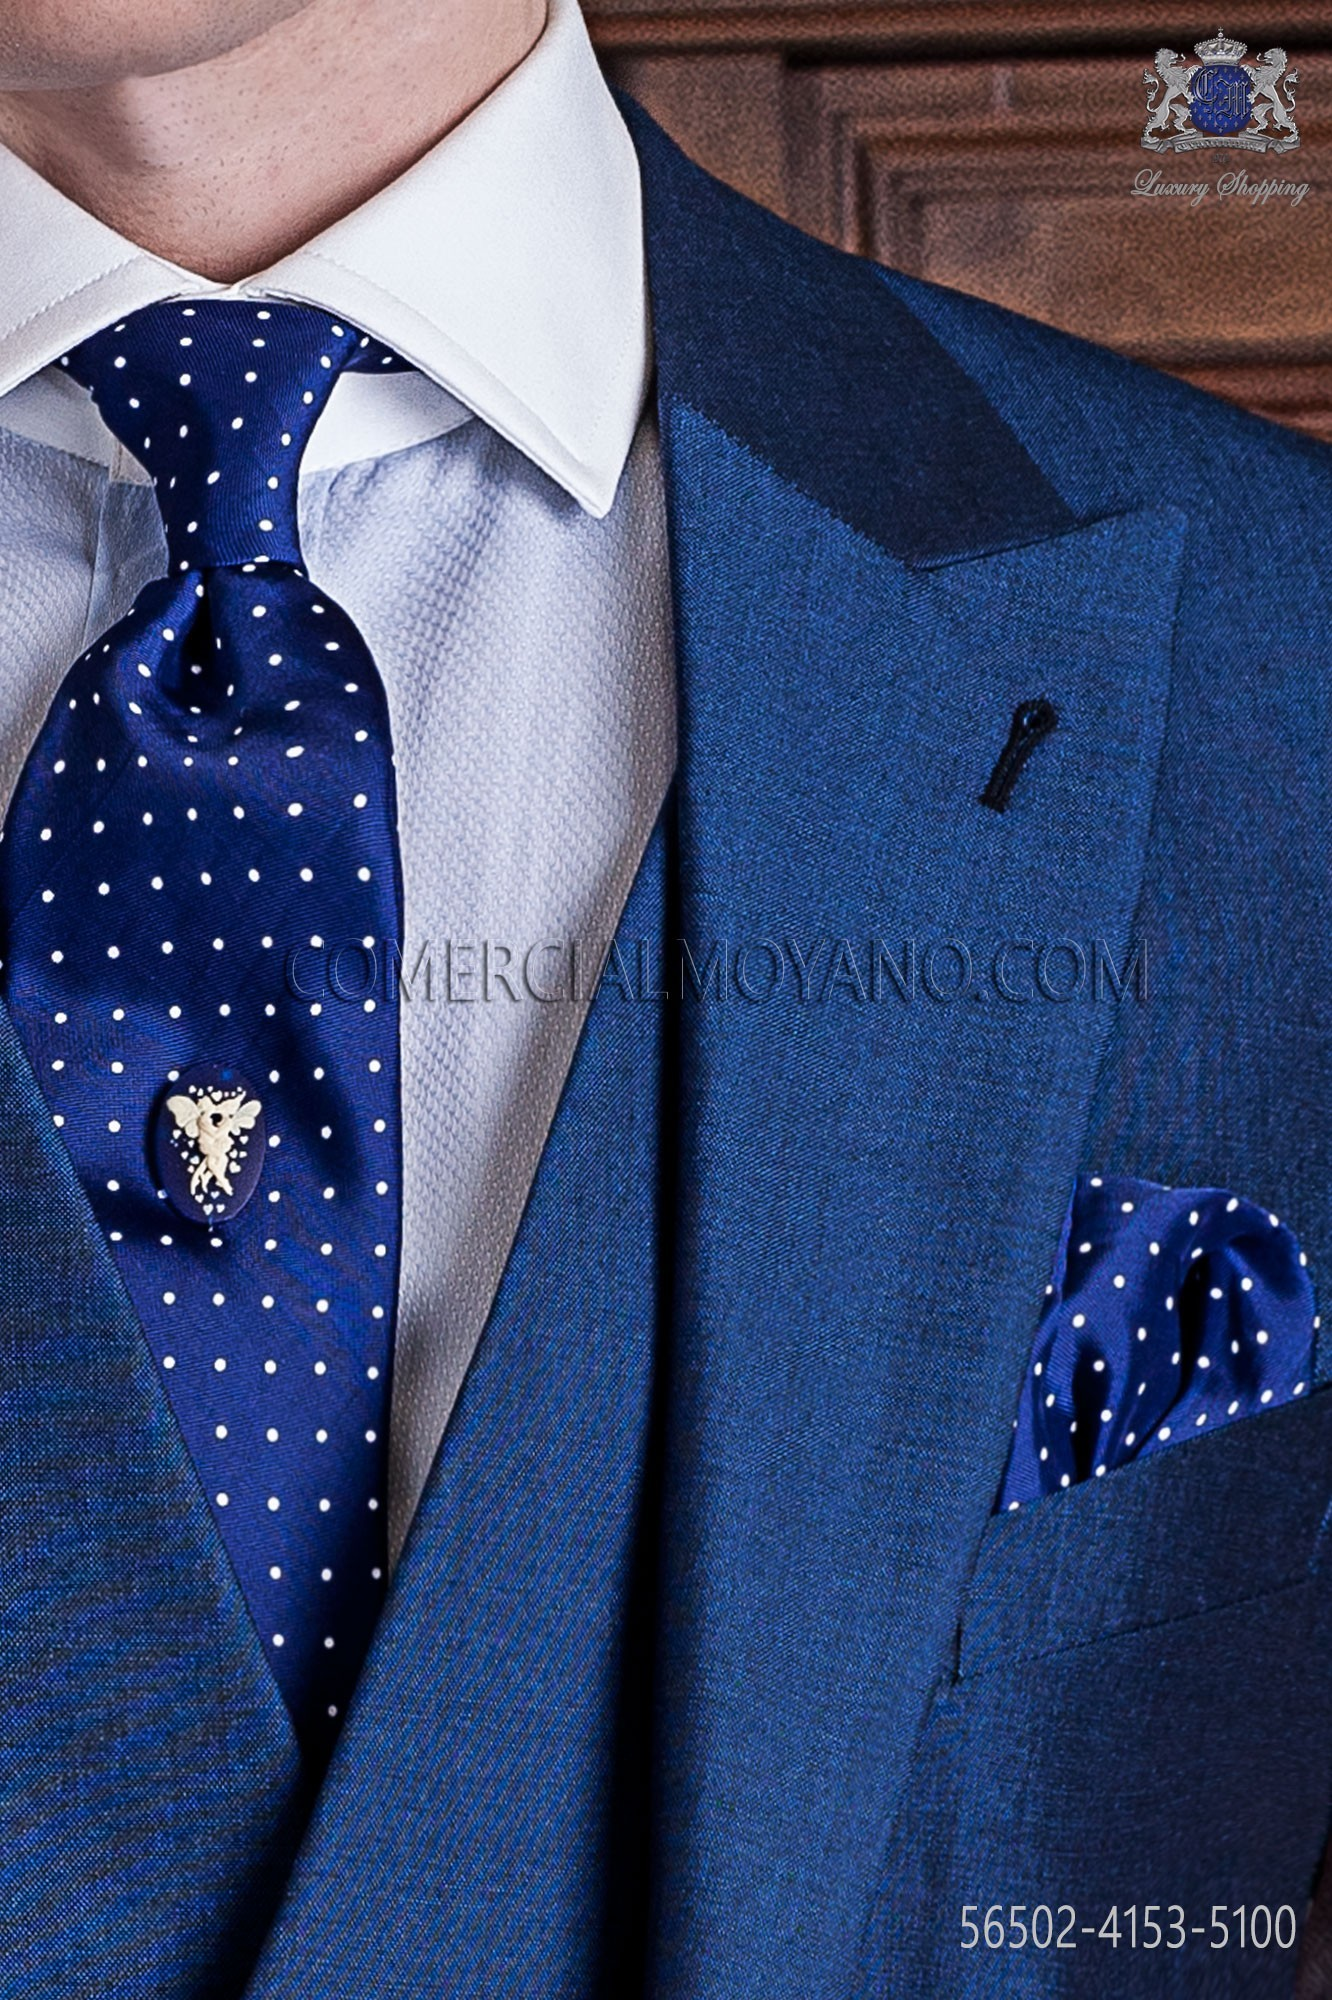 Details about  /FIORIO Milan Men/'s Tie Blue Polka Dot Burgundy Lined CM 8 Made IN Italy